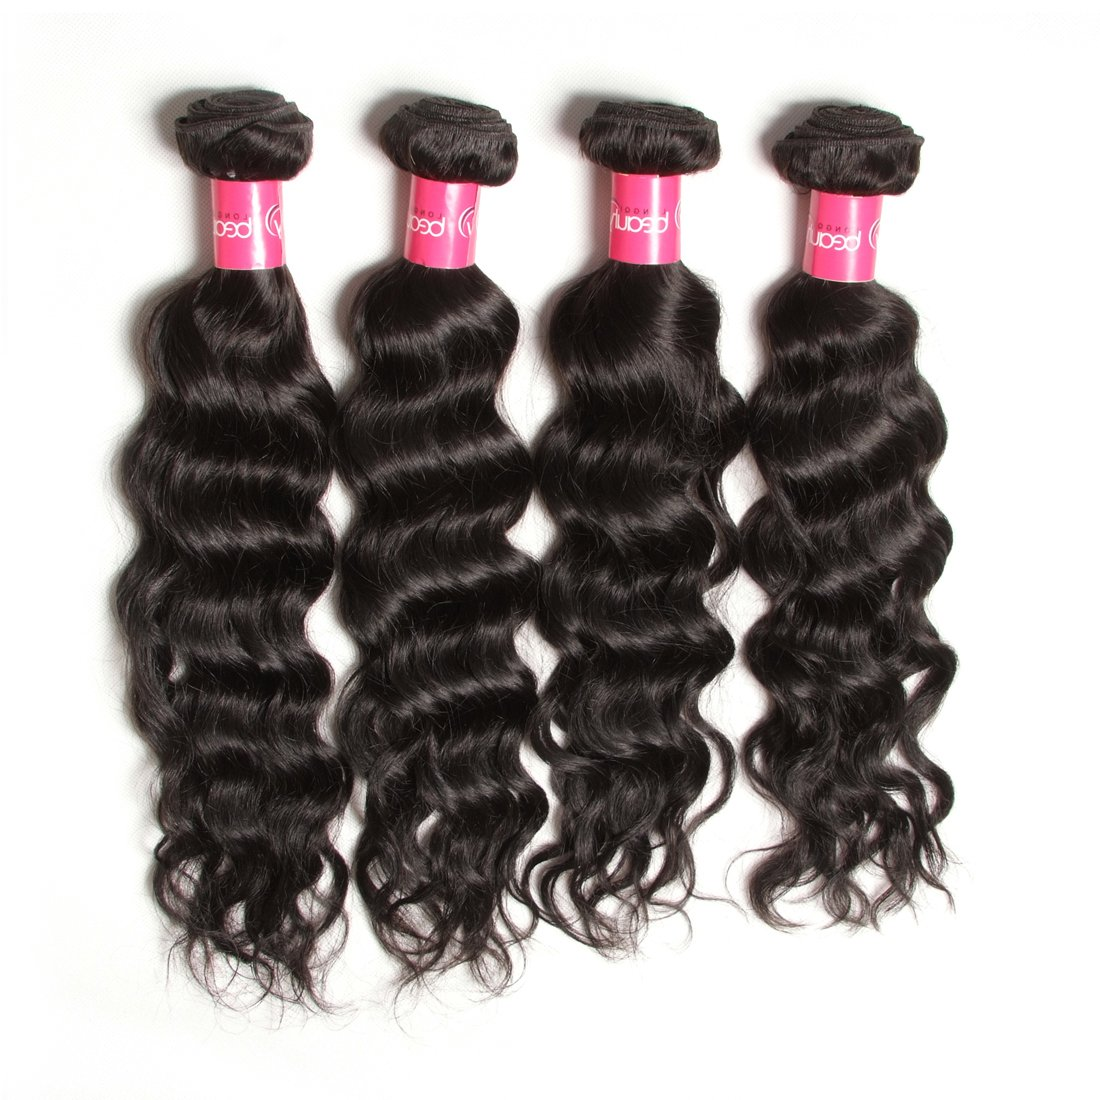 Longqi 7a Unprocessed Virgin Hair Brazilian Natural Wave Bundles Pack of 3 Cheap Wavy Human Hair Bundles Deal (18 20 22inch, Natural Color) by Dinoce (Image #2)